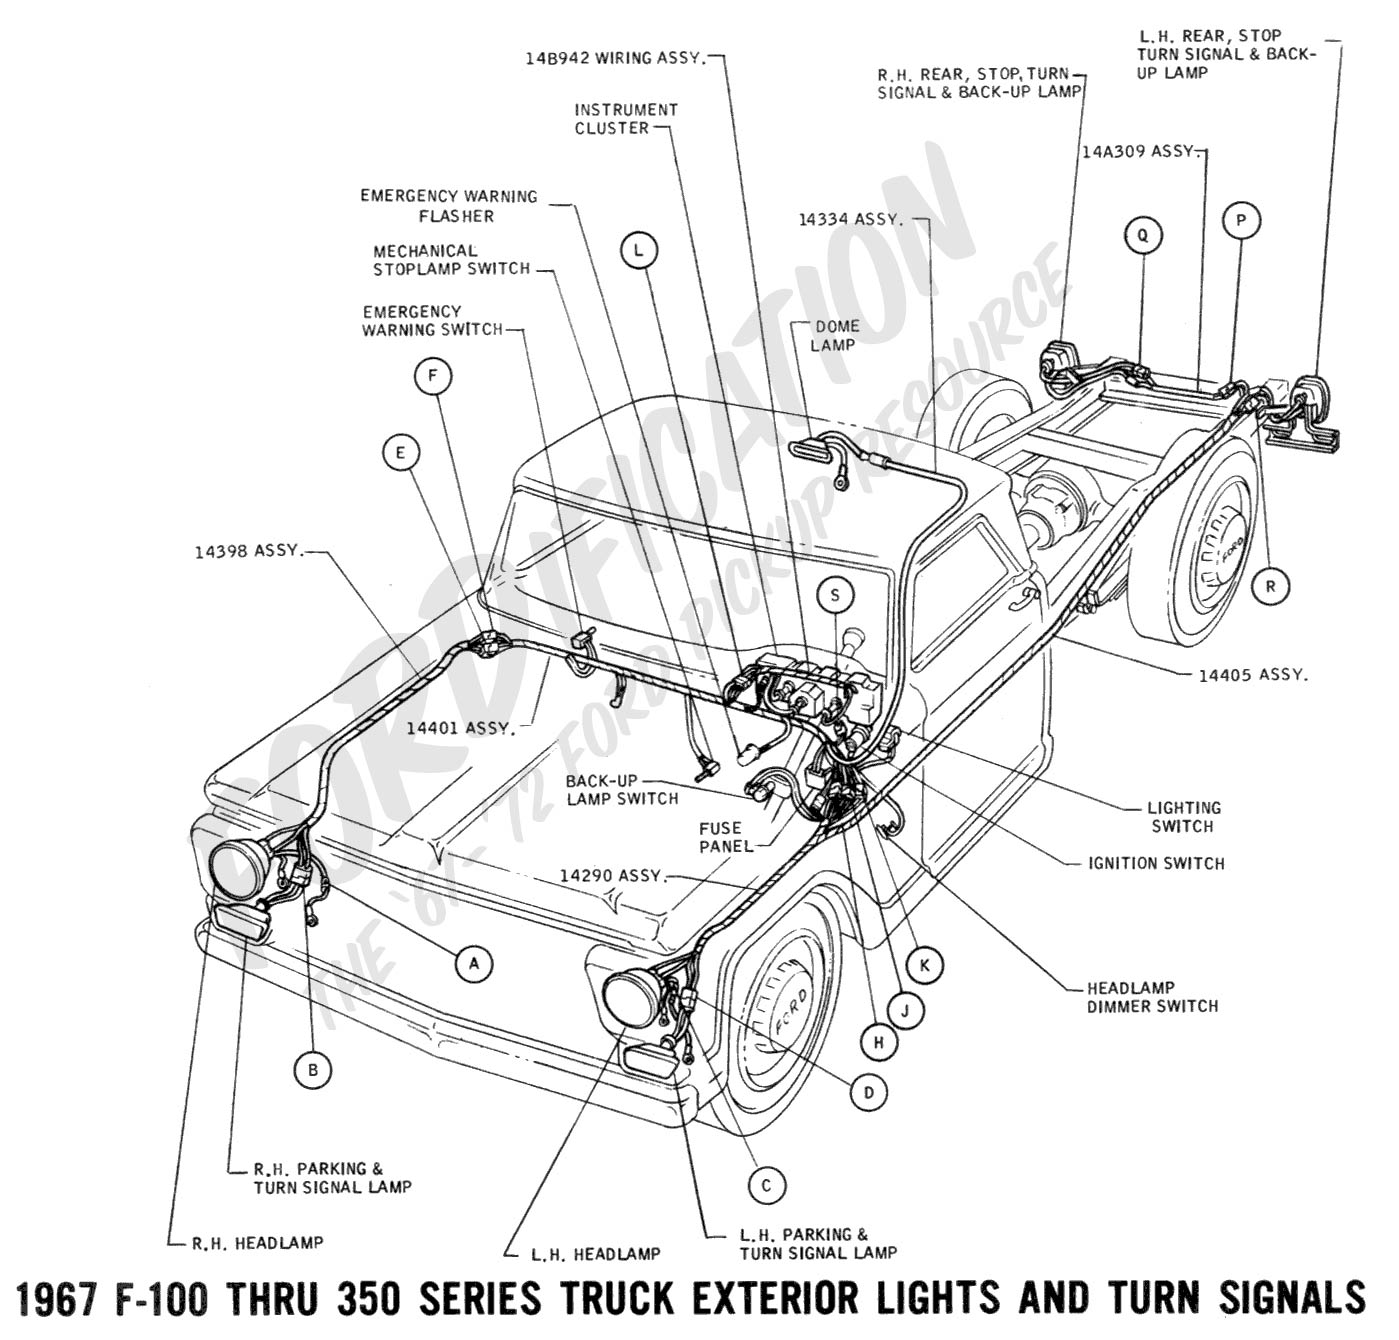 1999 Ford Ranger Tail Light Wiring Harness Diy Enthusiasts Truck Technical Drawings And Schematics Section H Rh Fordification Com Circuit Breaker Box Chevy